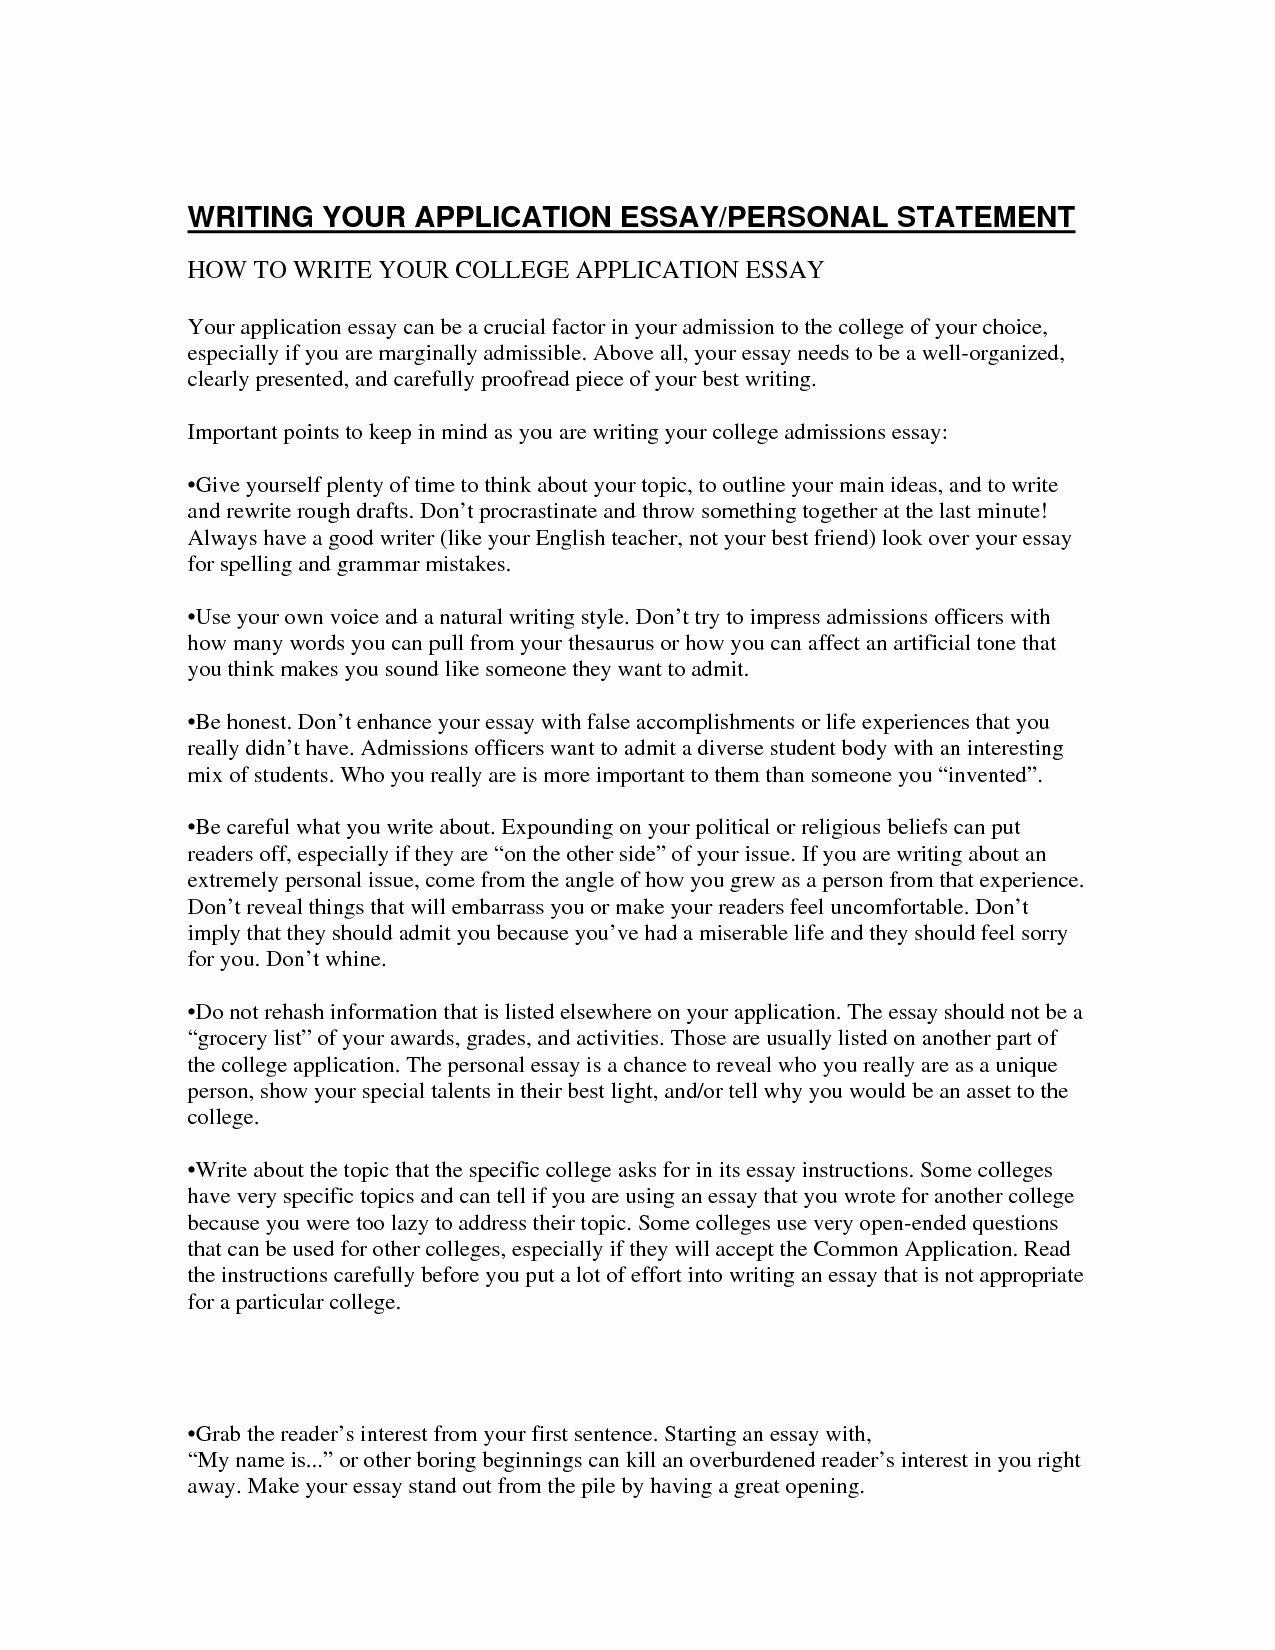 Personal Statement About Yourself Example Luxury Personal Essay Examples for College Admission